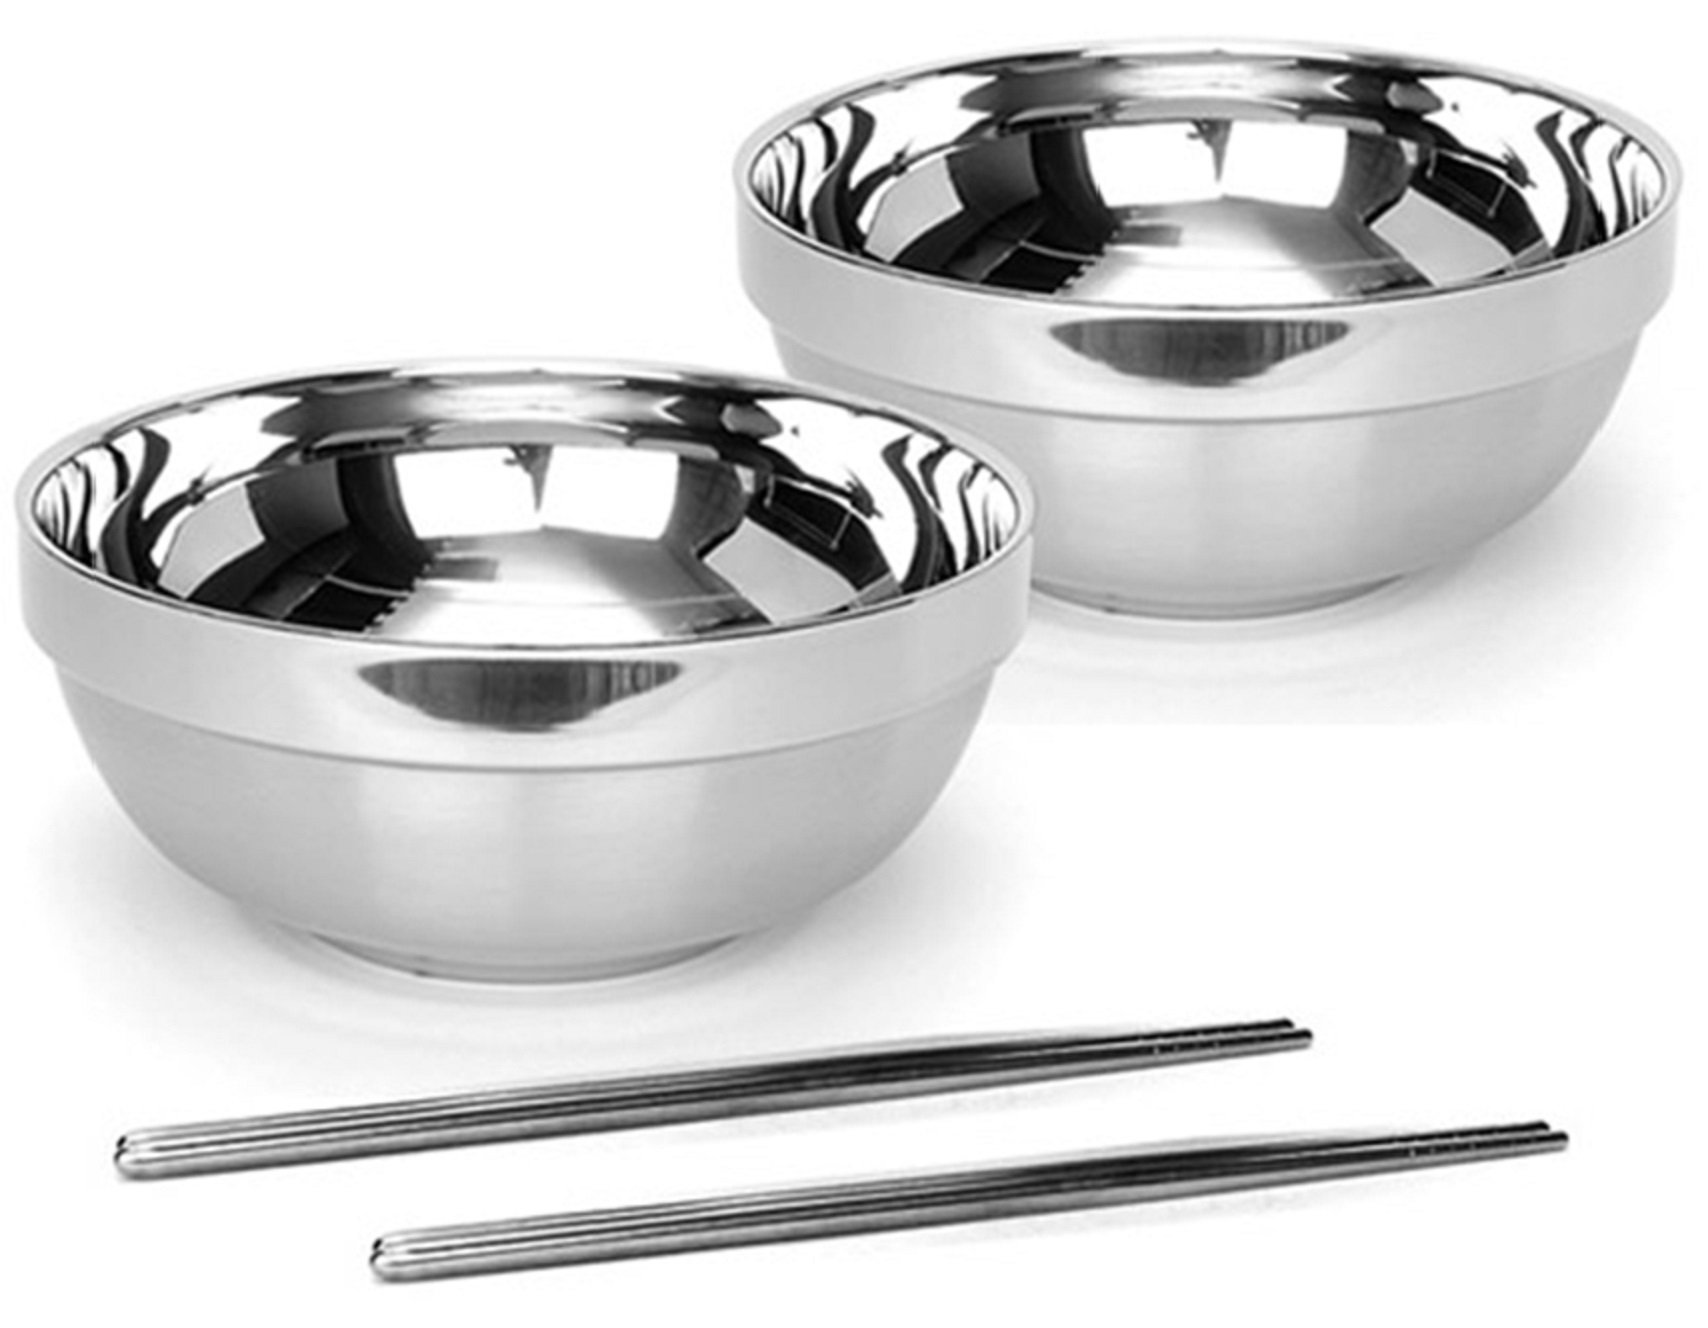 Vacuum Insulated Double Skin Stainless Steel Korean Traditional Naengmyeon Bibimbap Bowl 2 pcs 7.1 inches With Chopsticks